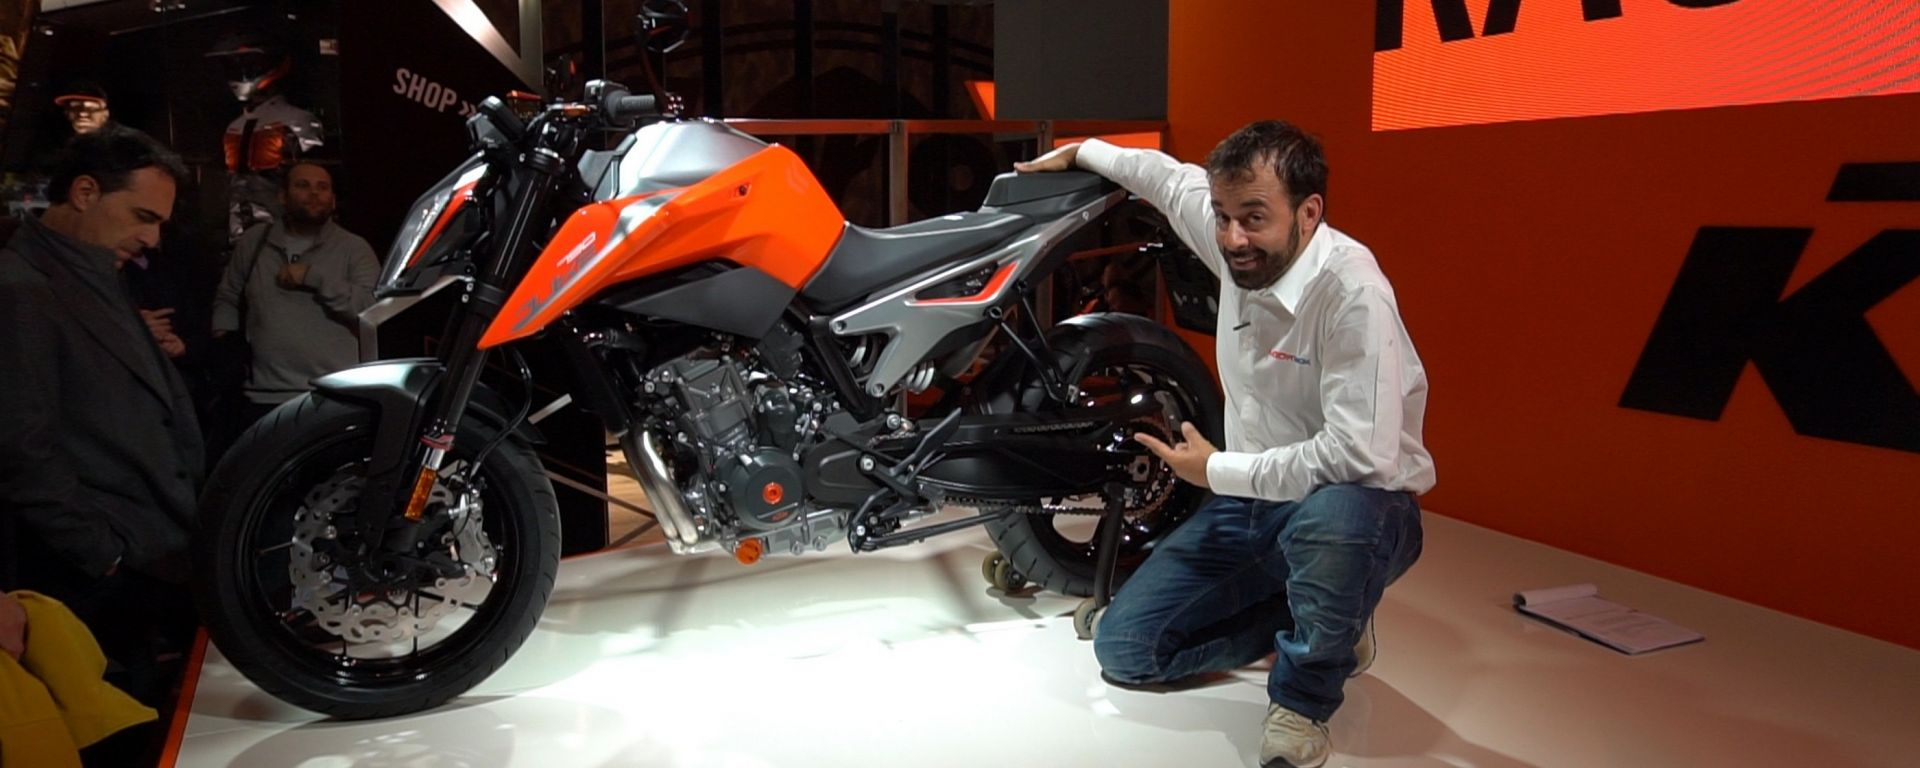 KTM 790 Duke: a Eicma 2017 diventa realtà [VIDEO]